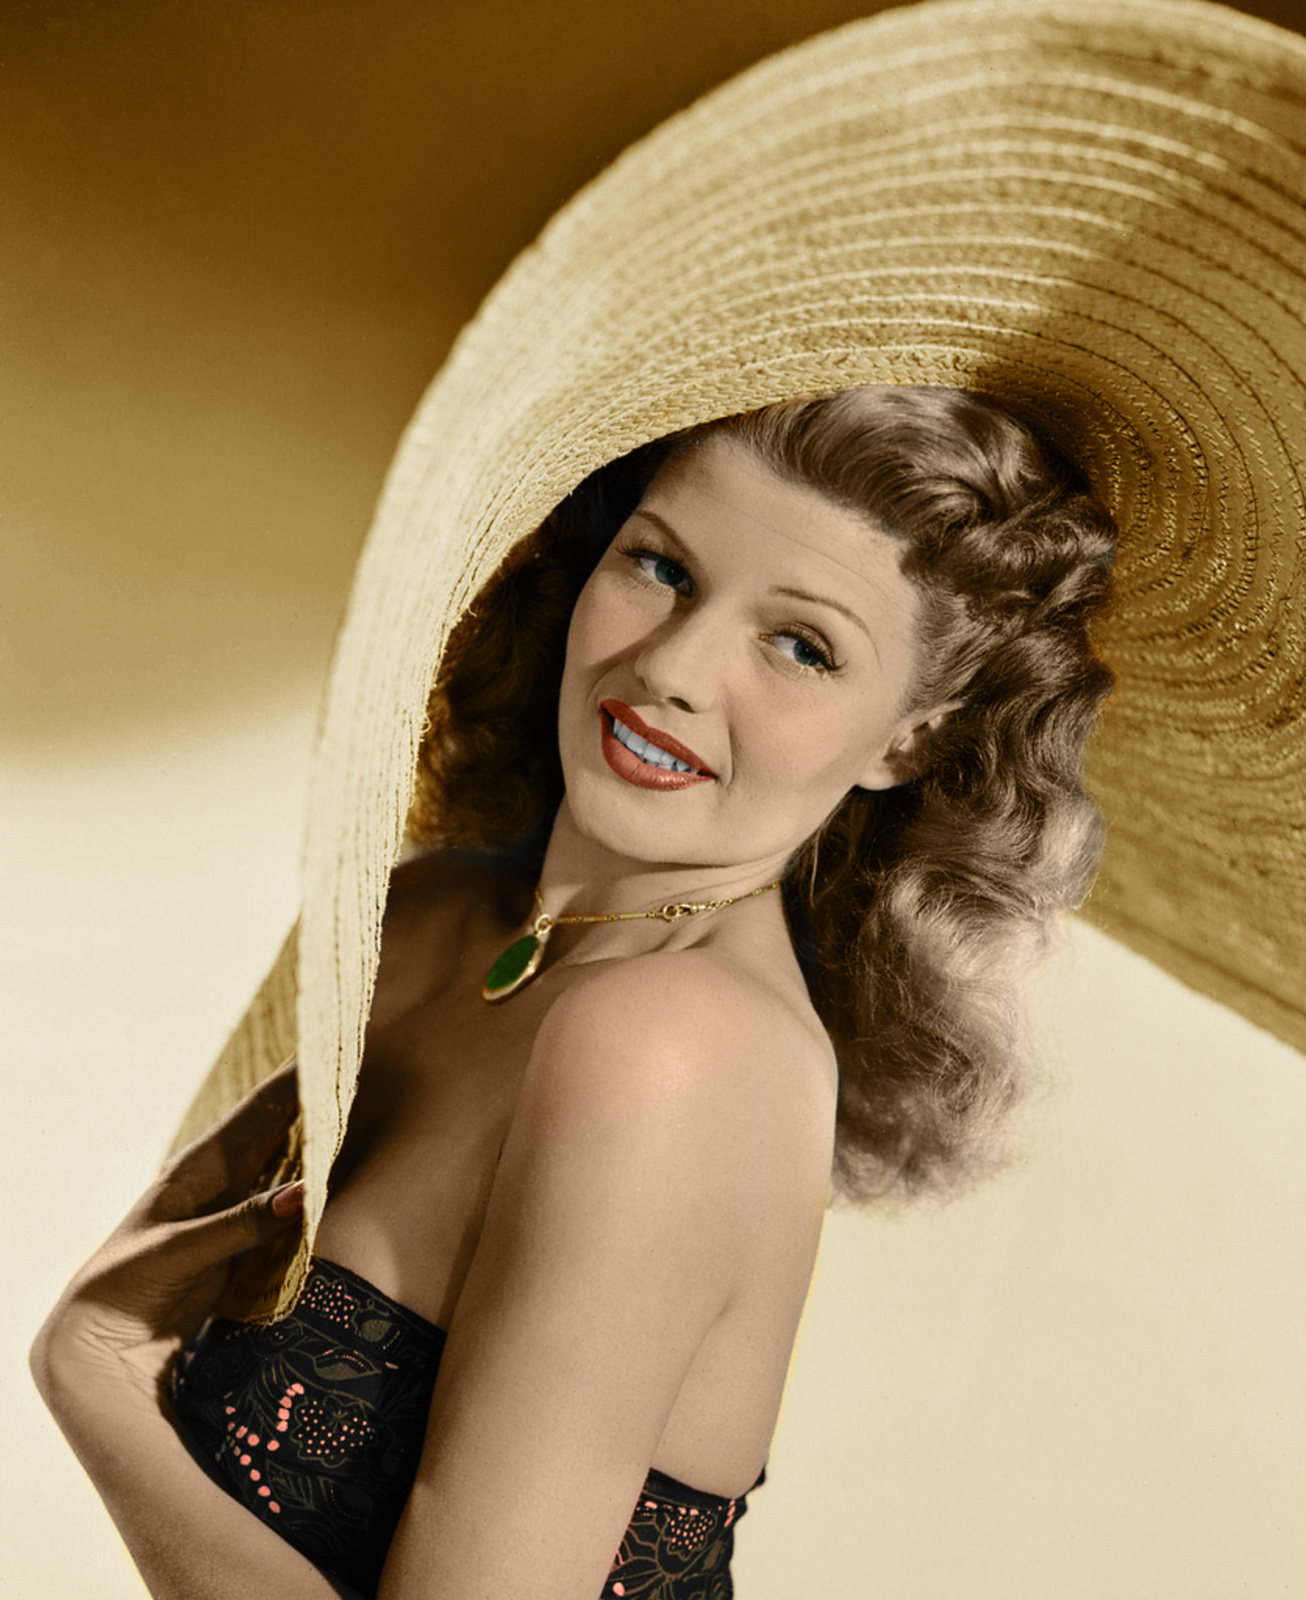 3D nue rita hayworth 3Do softcore lady